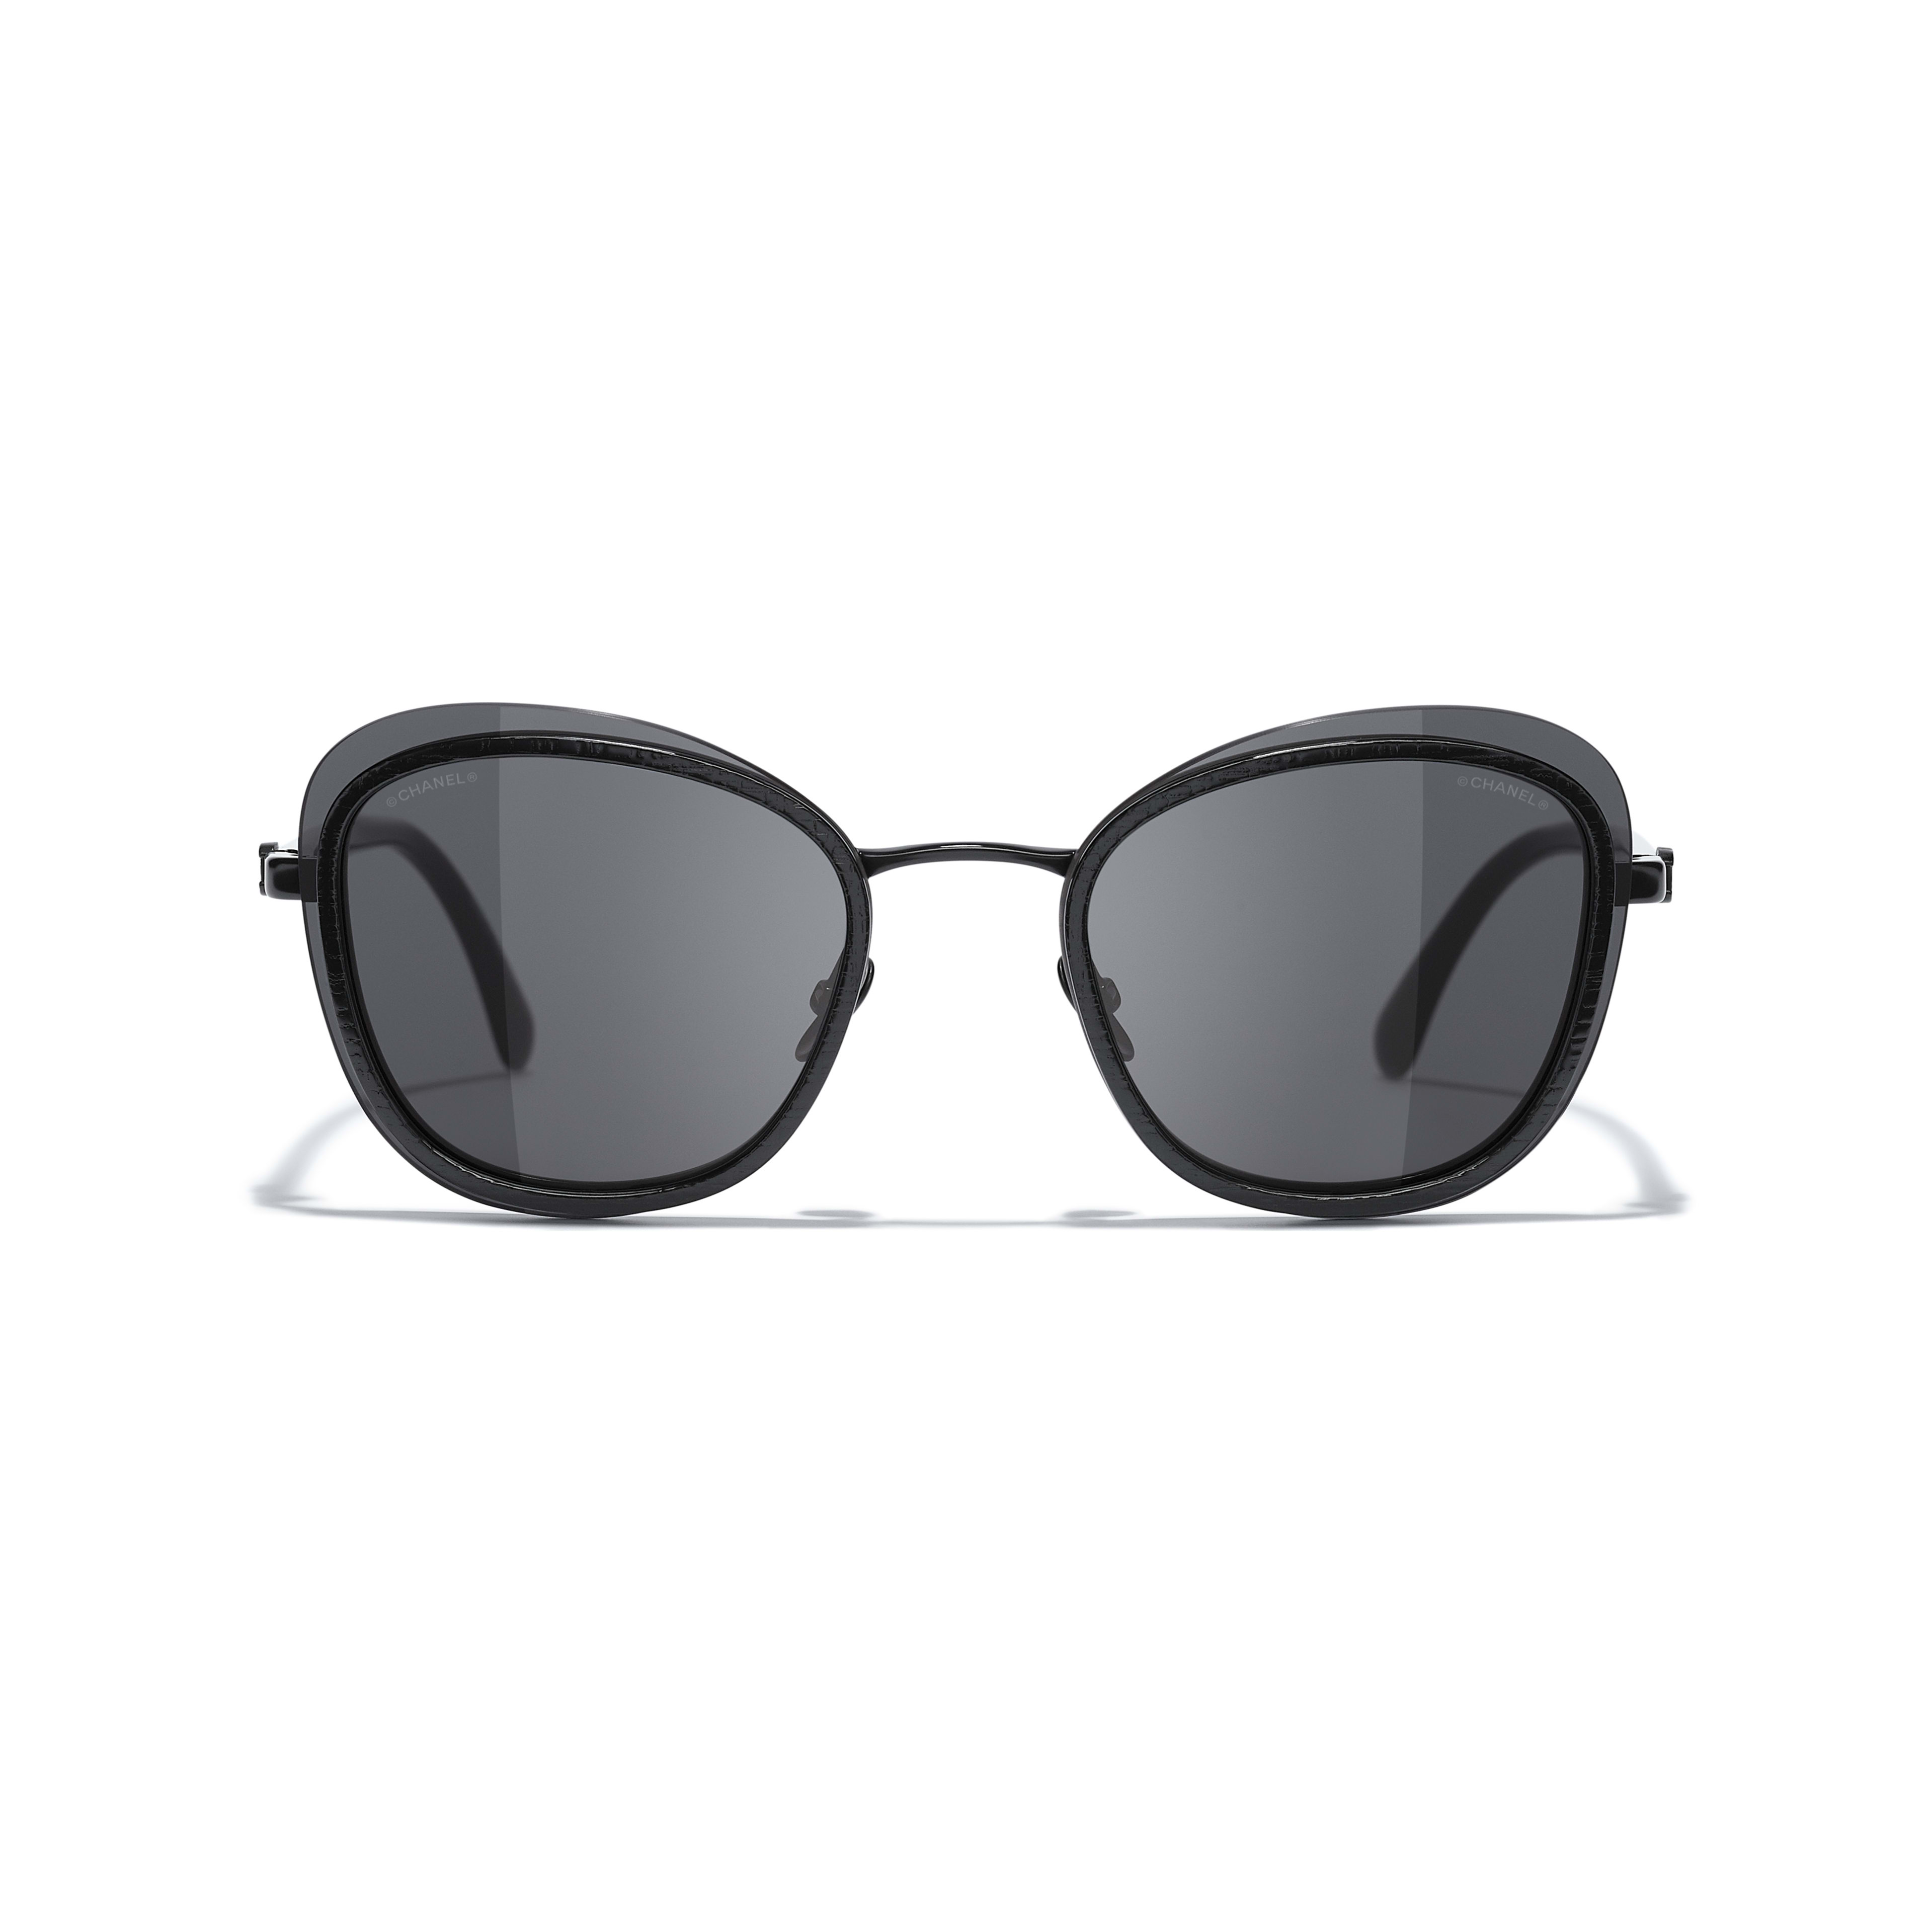 Pantos Sunglasses - Black - Acetate & Metal - CHANEL - Alternative view - see standard sized version